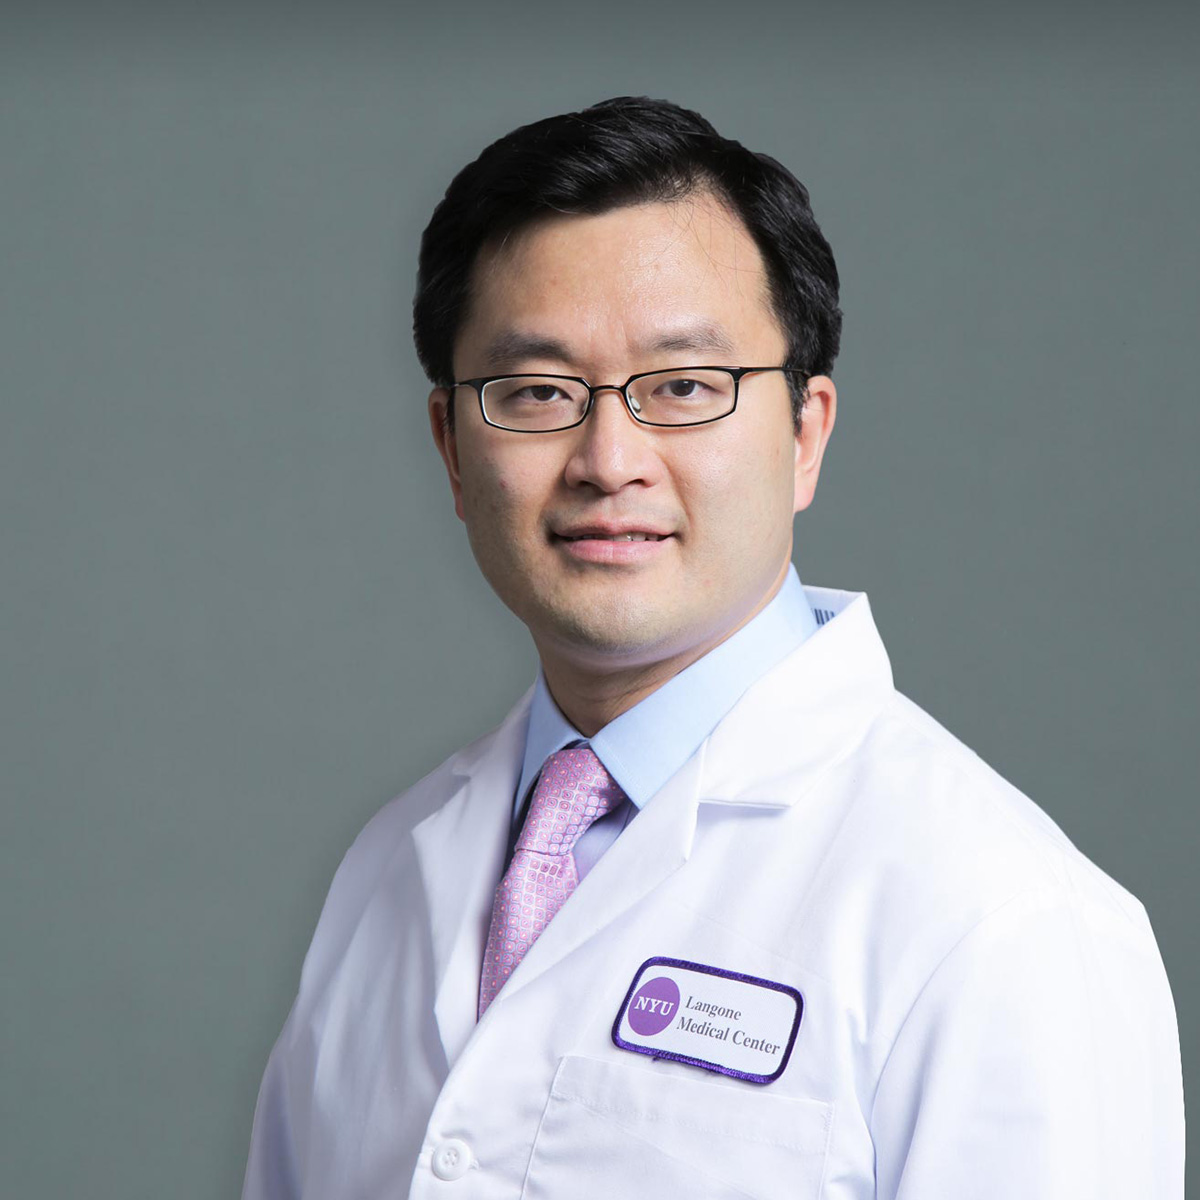 Edwin K. Joe,MD. Dermatology